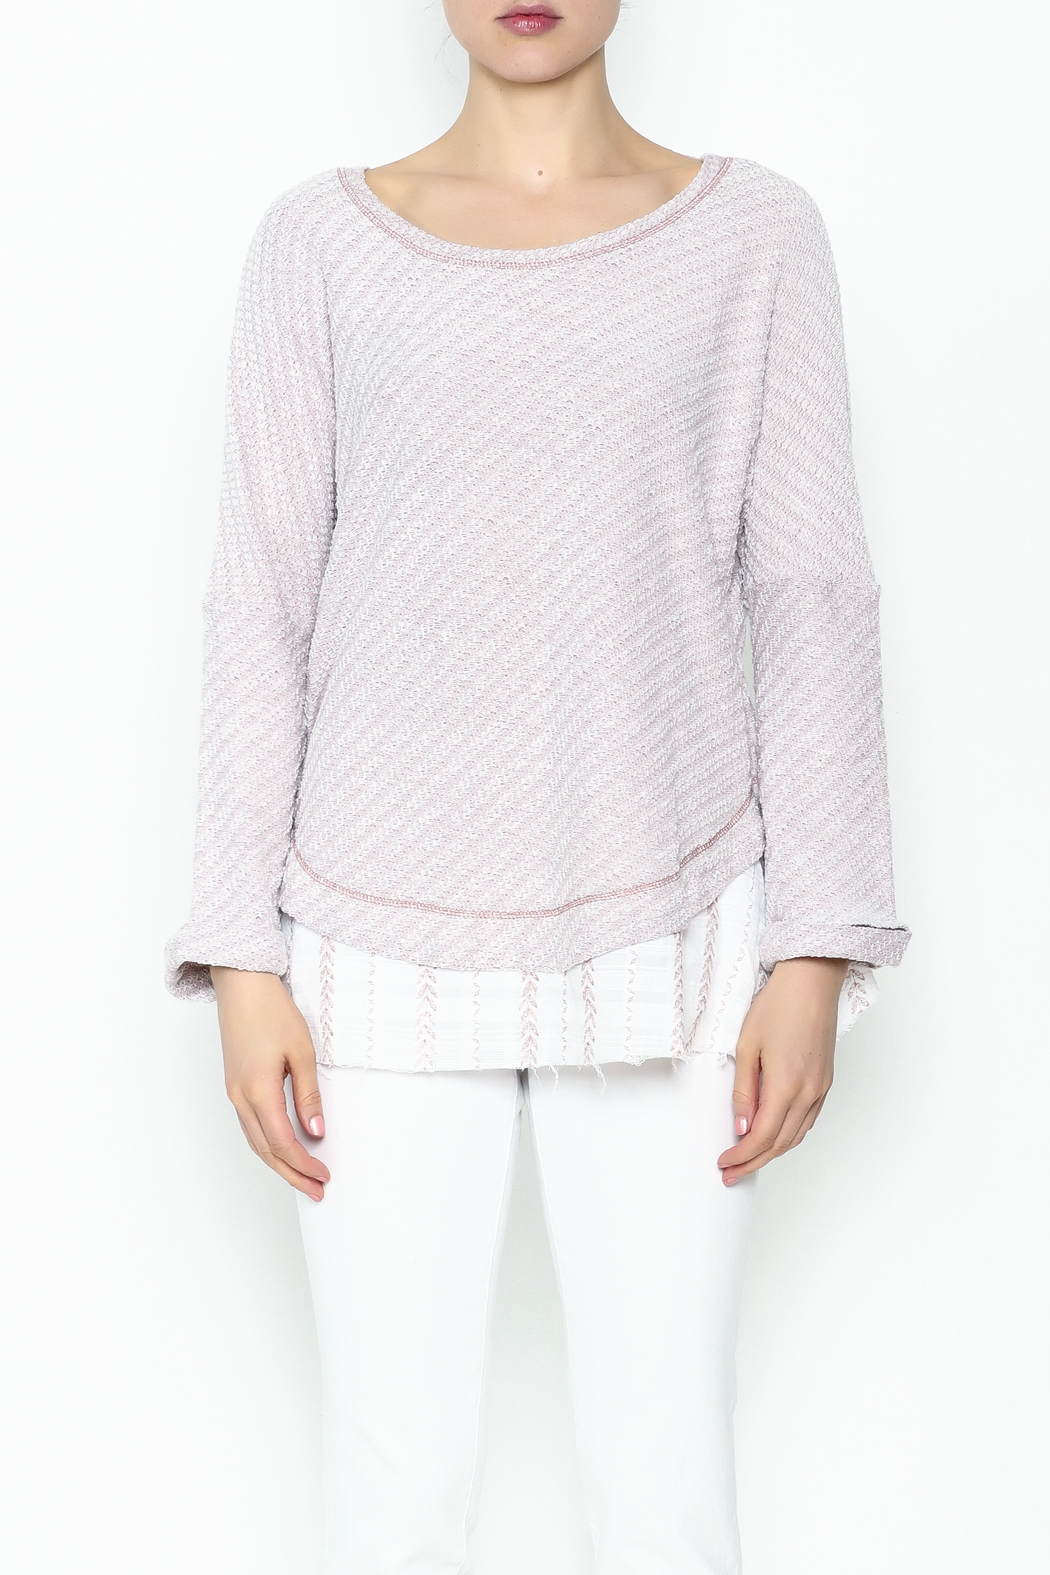 Hyku Knit Layered Top - Front Full Image